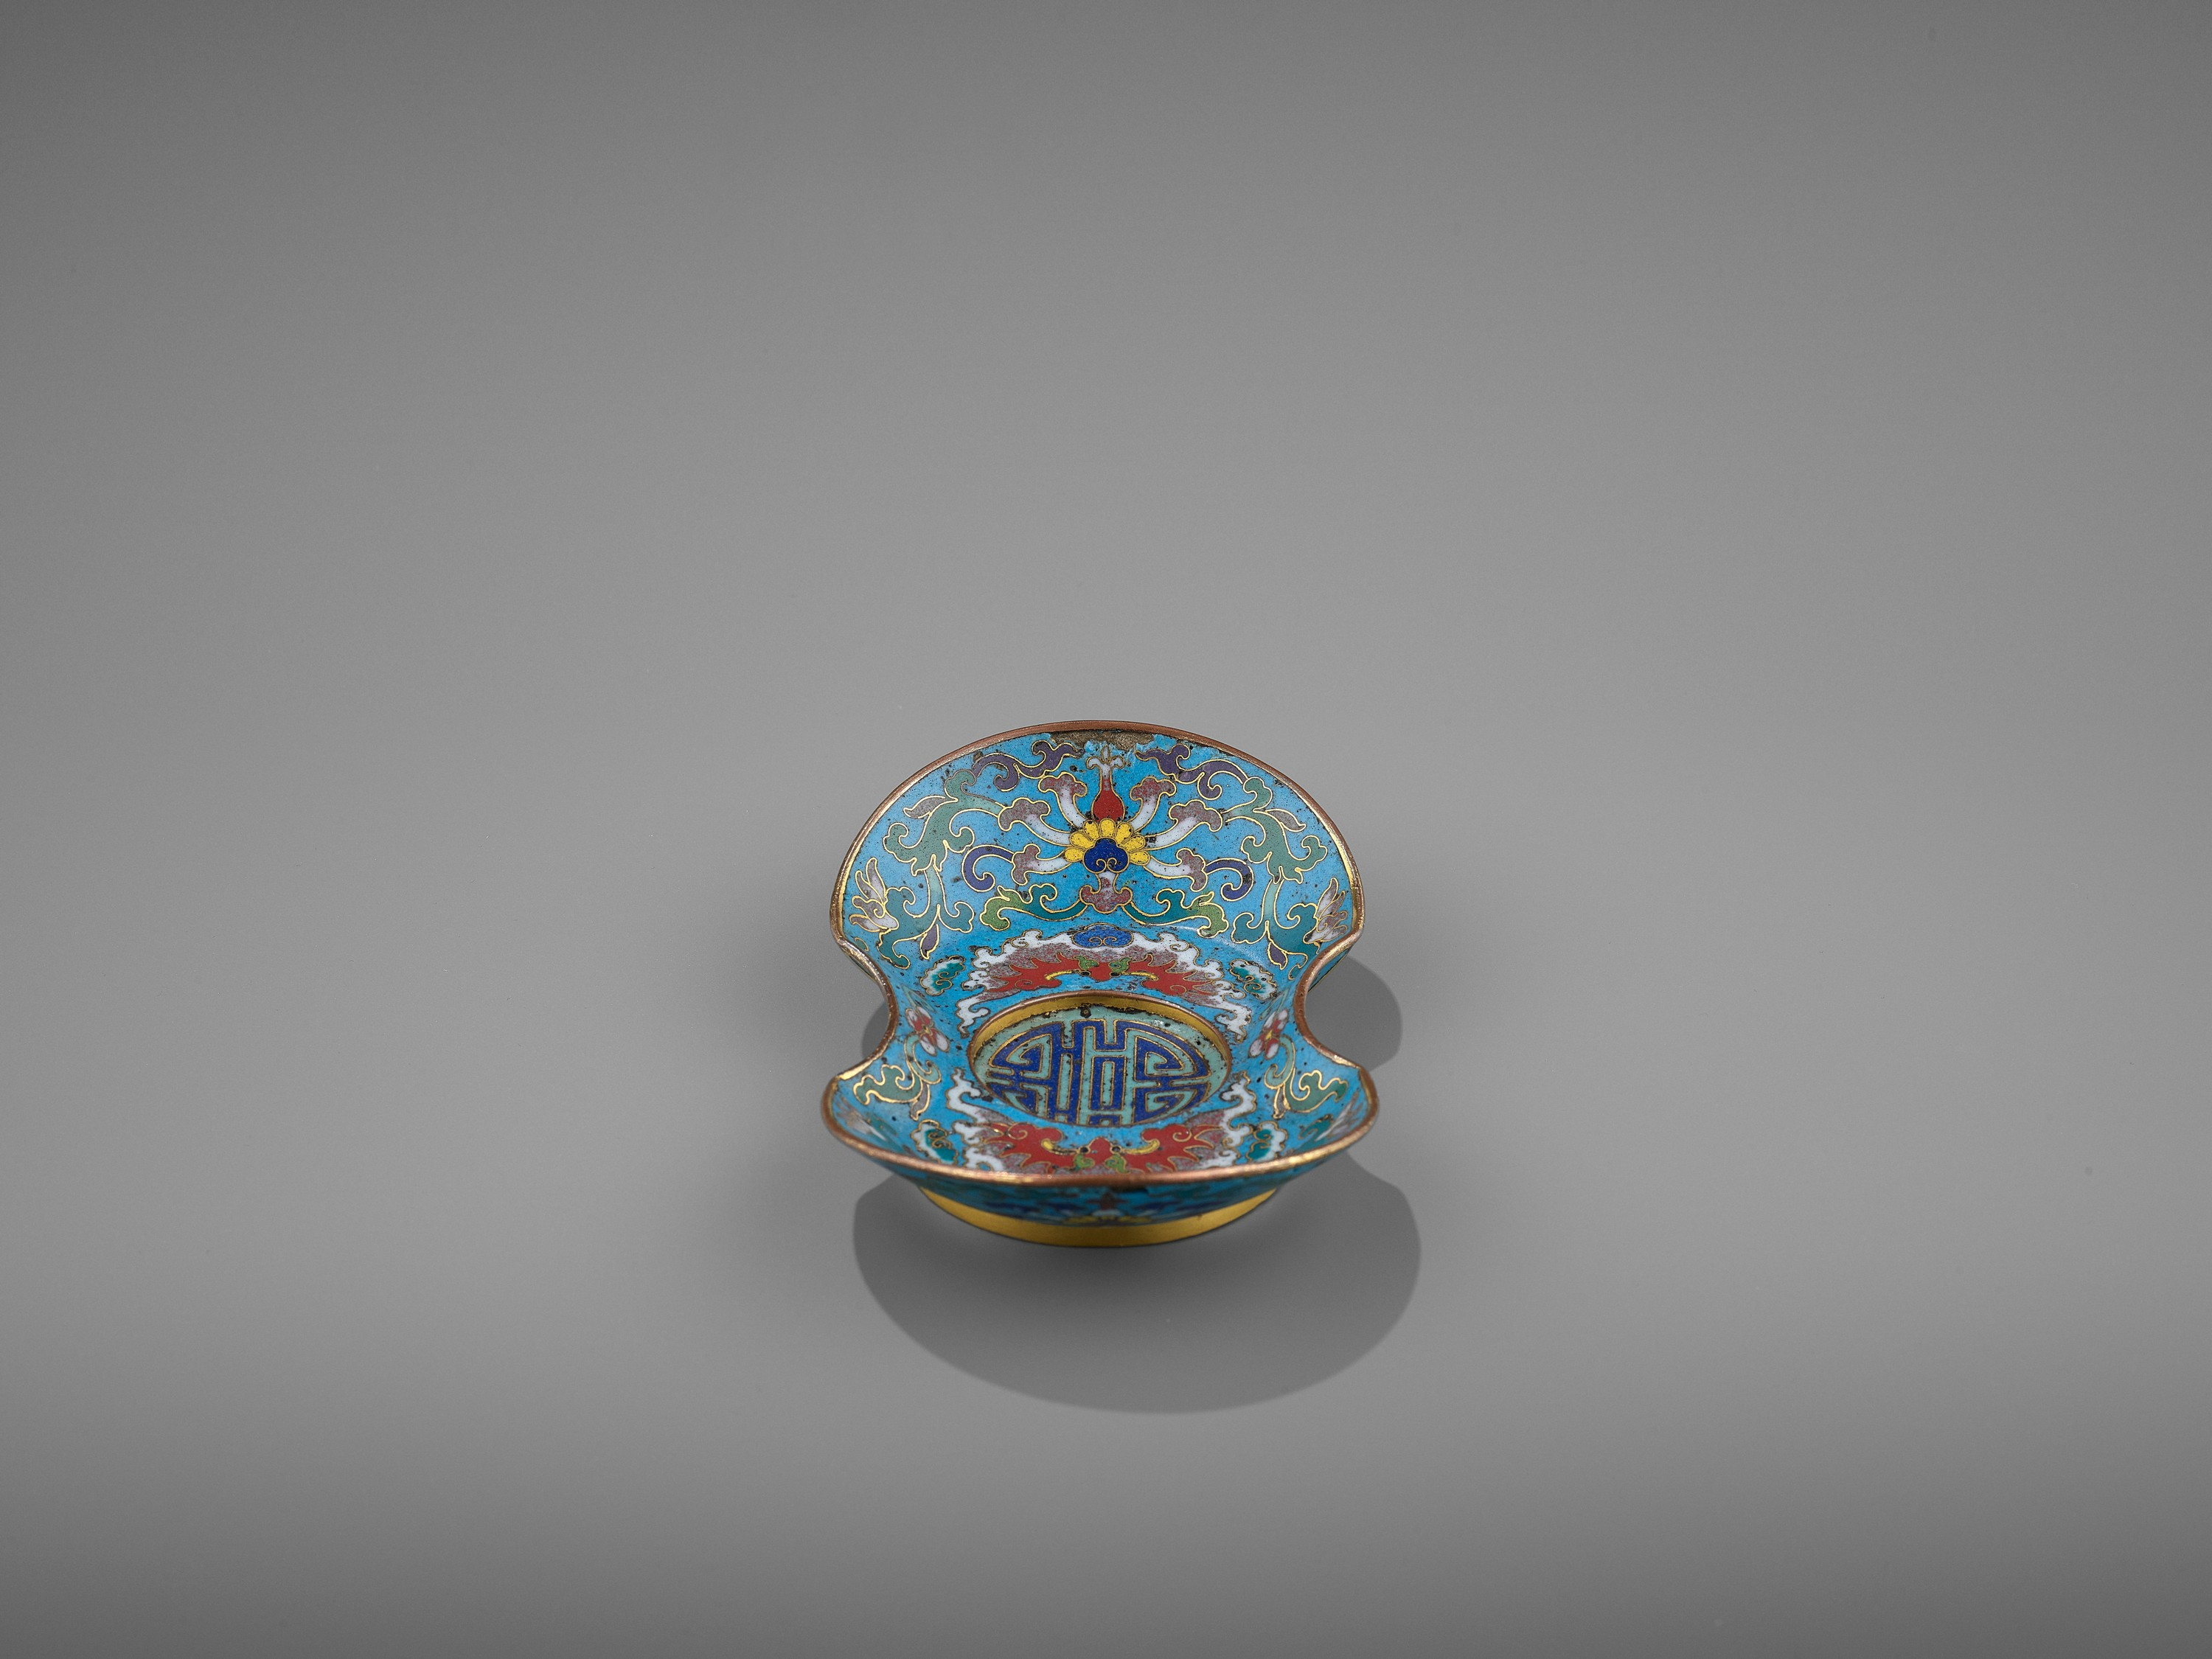 A CLOISONNE AND GILT-BRONZE 'DOUBLE HAPPINESS' CUP STAND, QIANLONG - Image 3 of 10